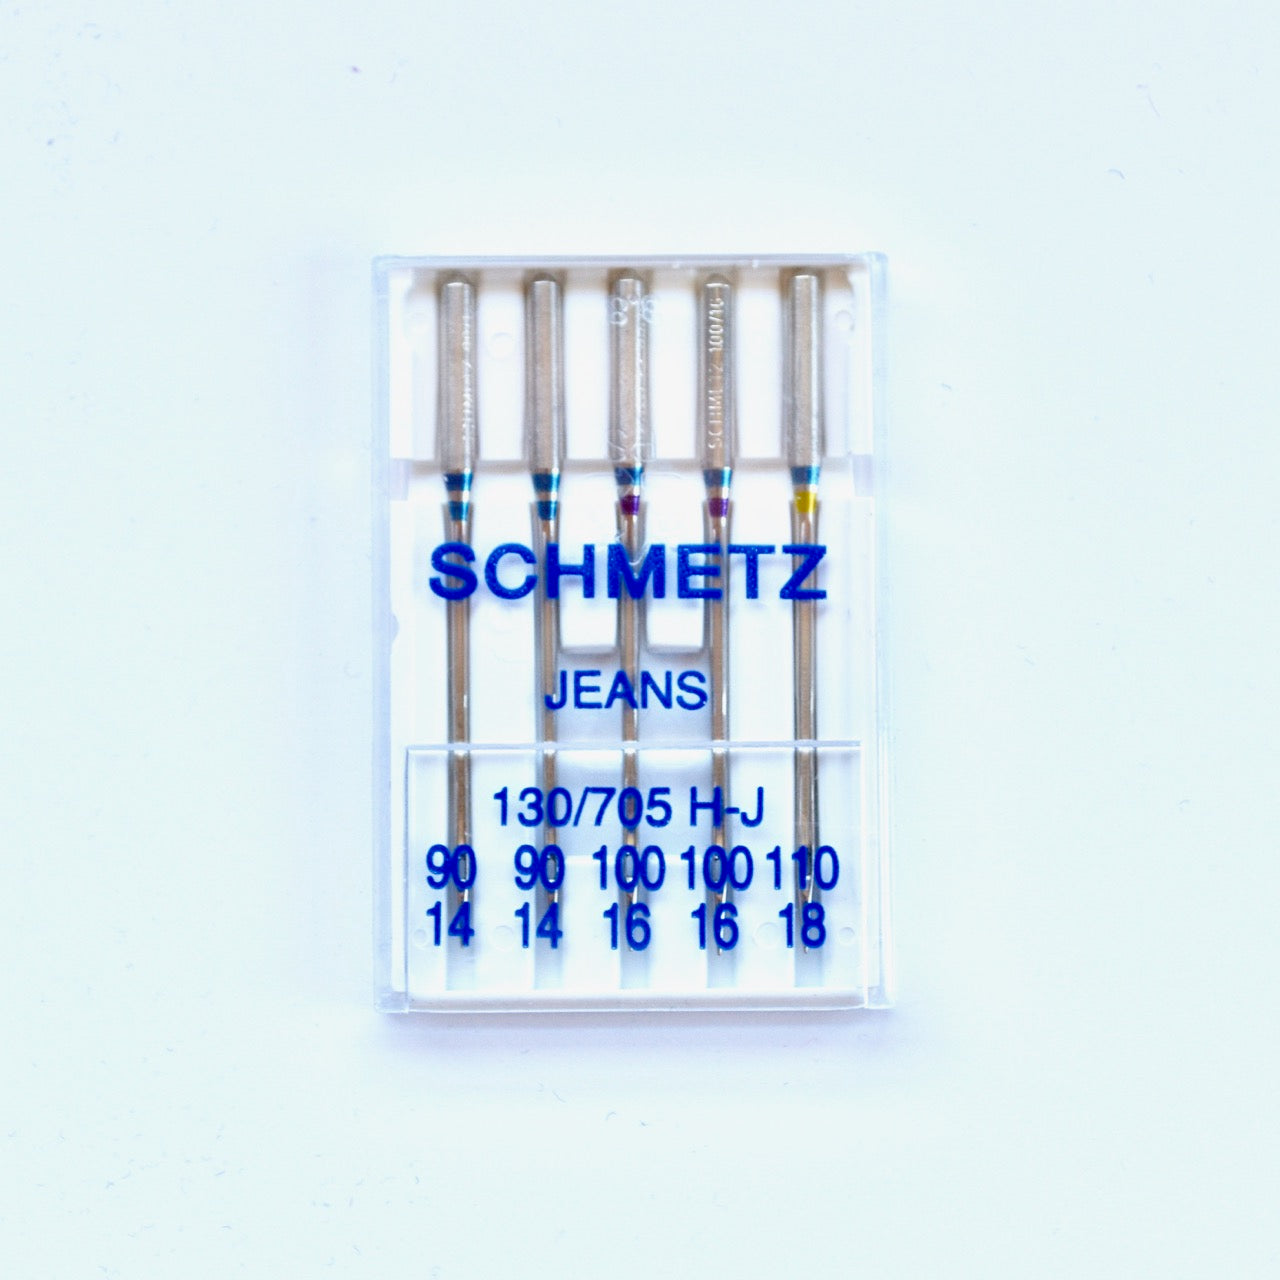 Machine Needles - Schmetz Jeans Assorted - MaaiDesign